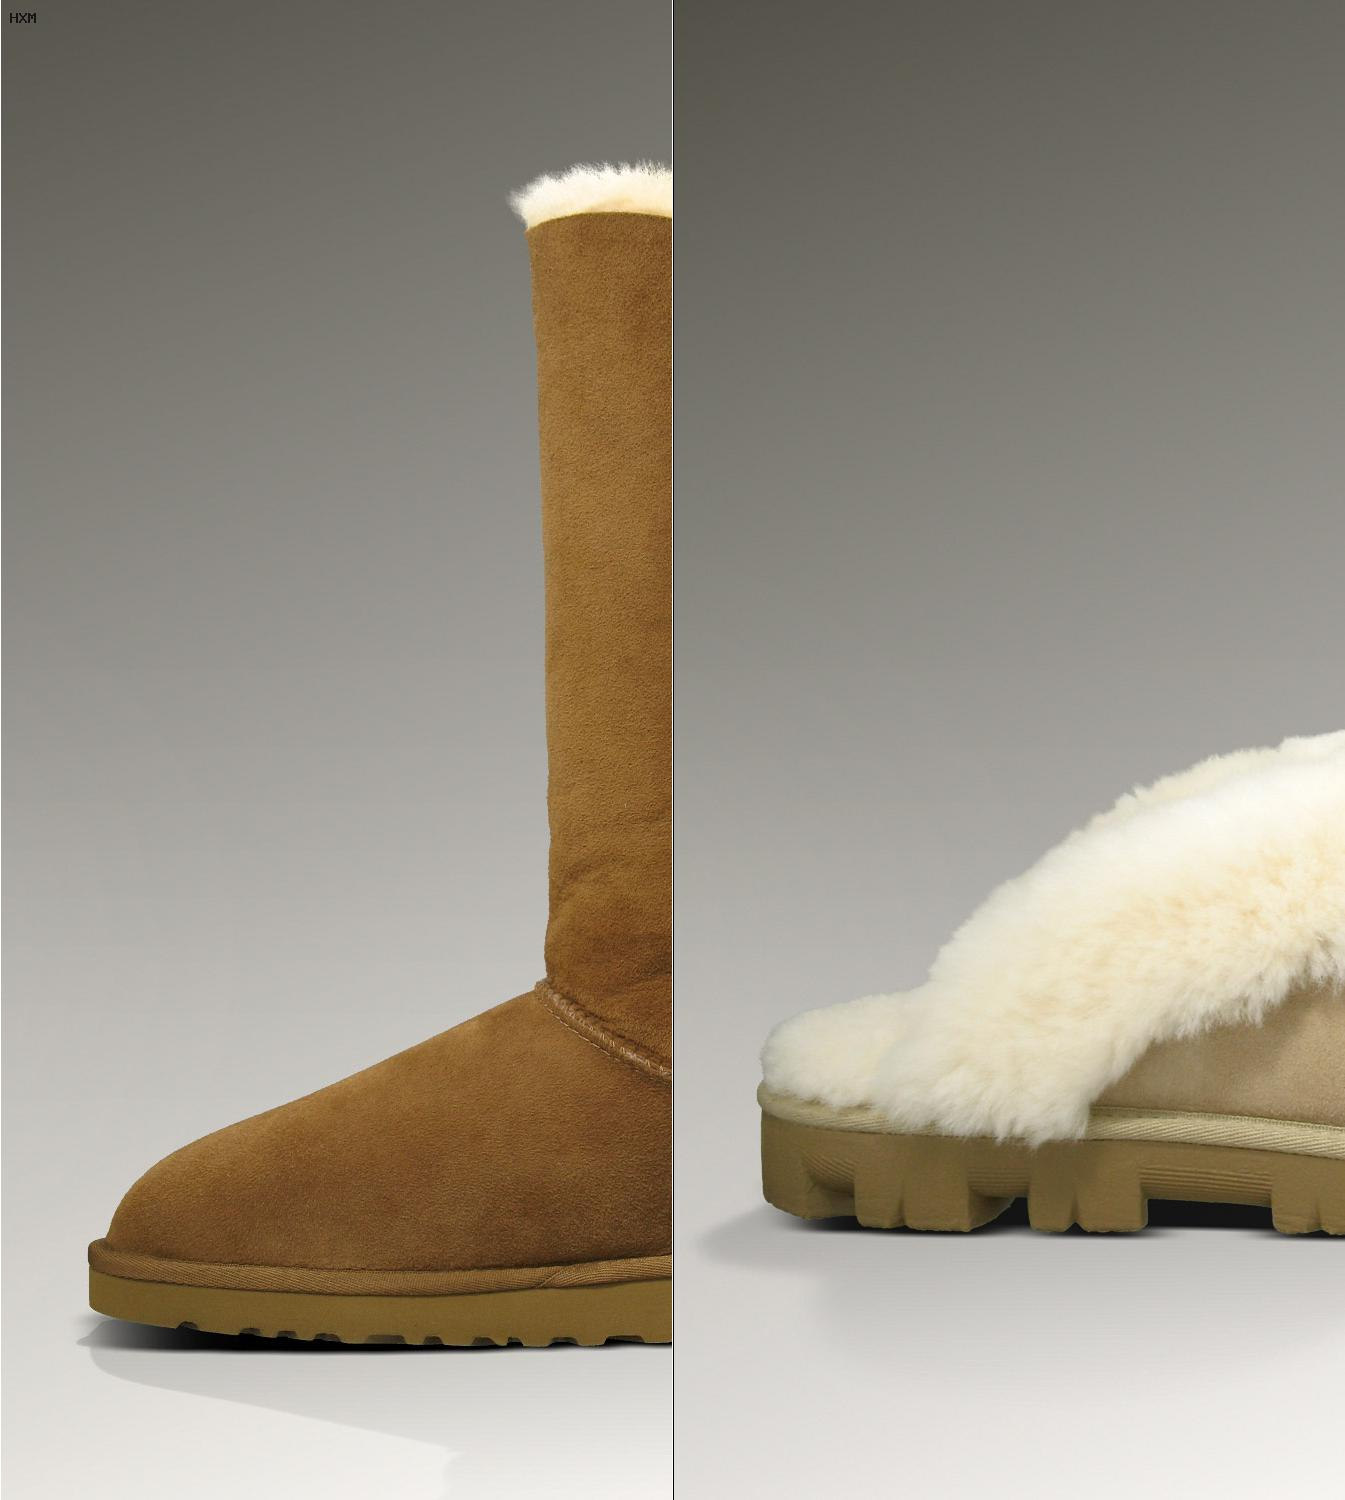 boots comme ugg